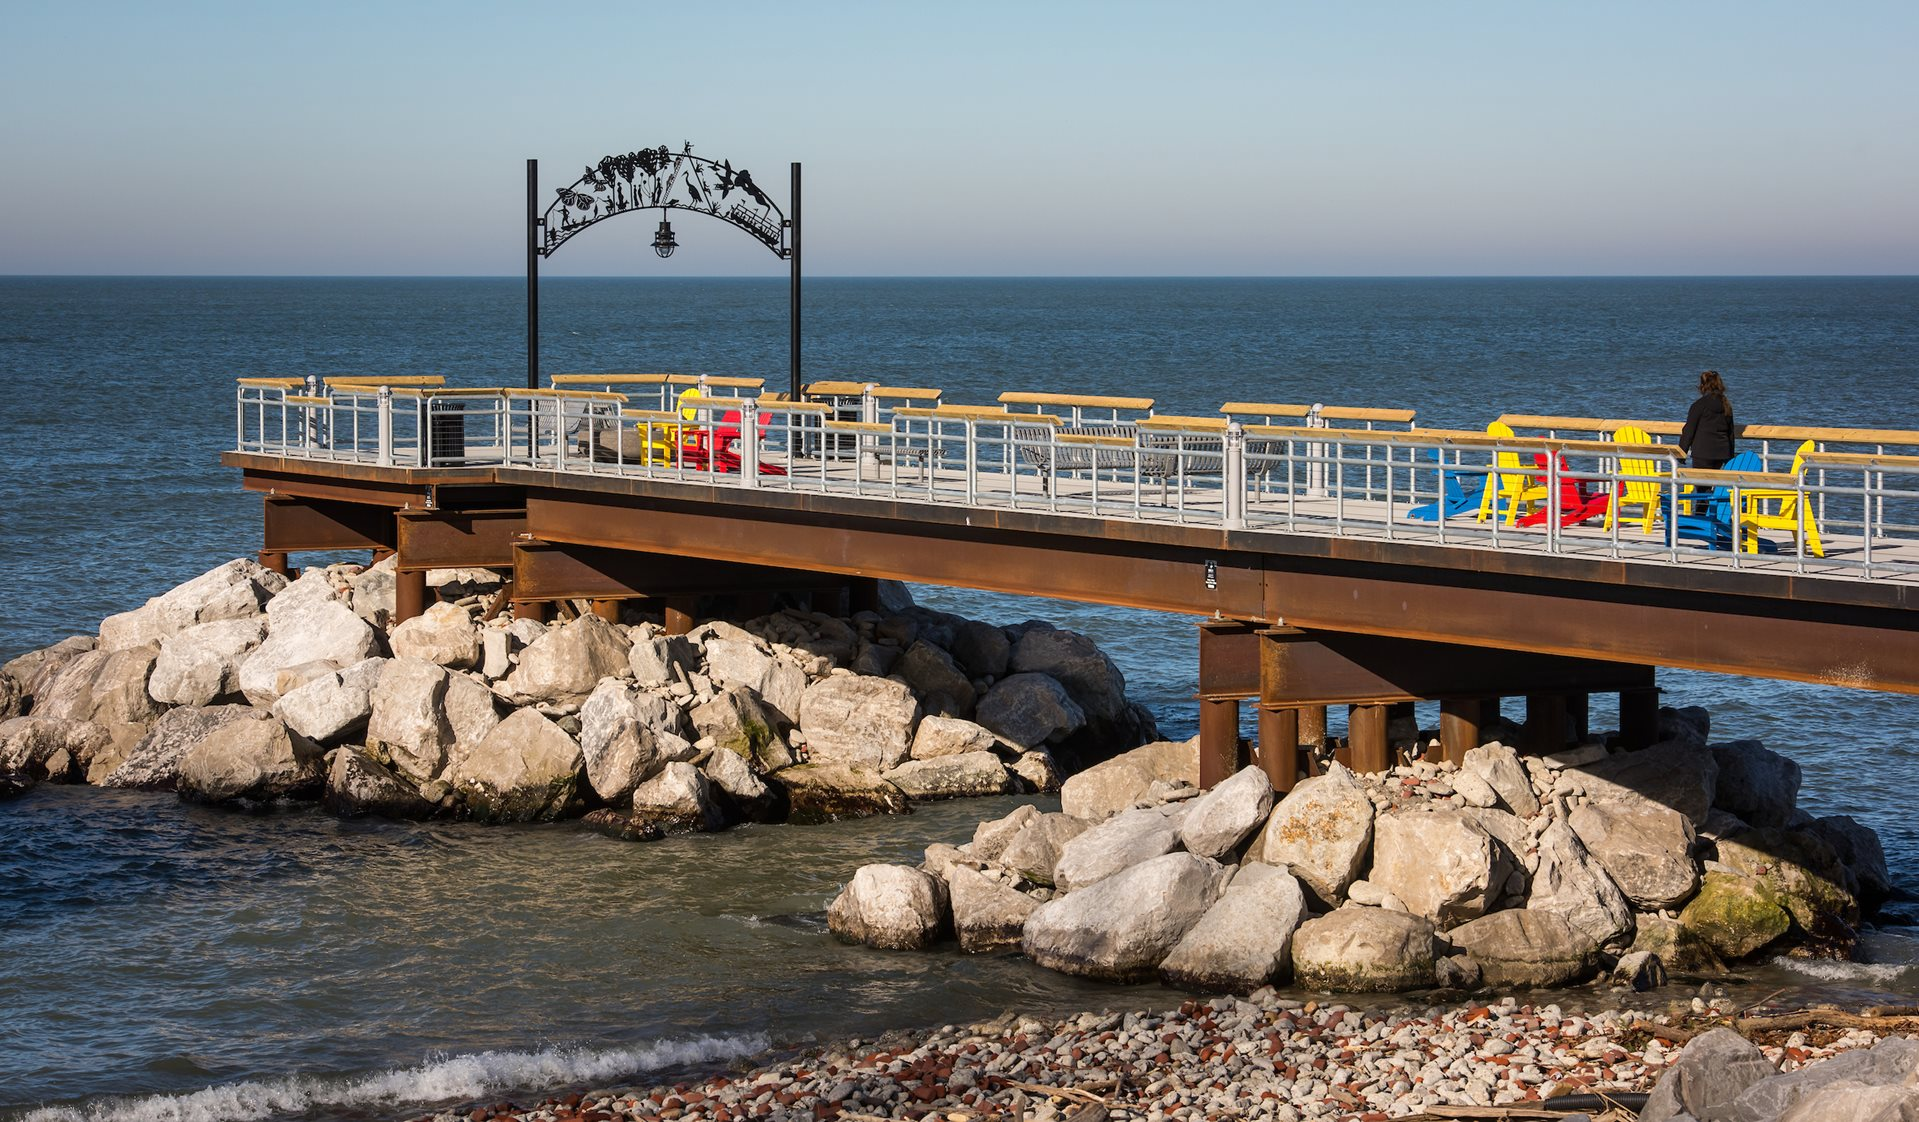 Cleveland Metroparks Celebrates Opening of Euclid Beach Pier